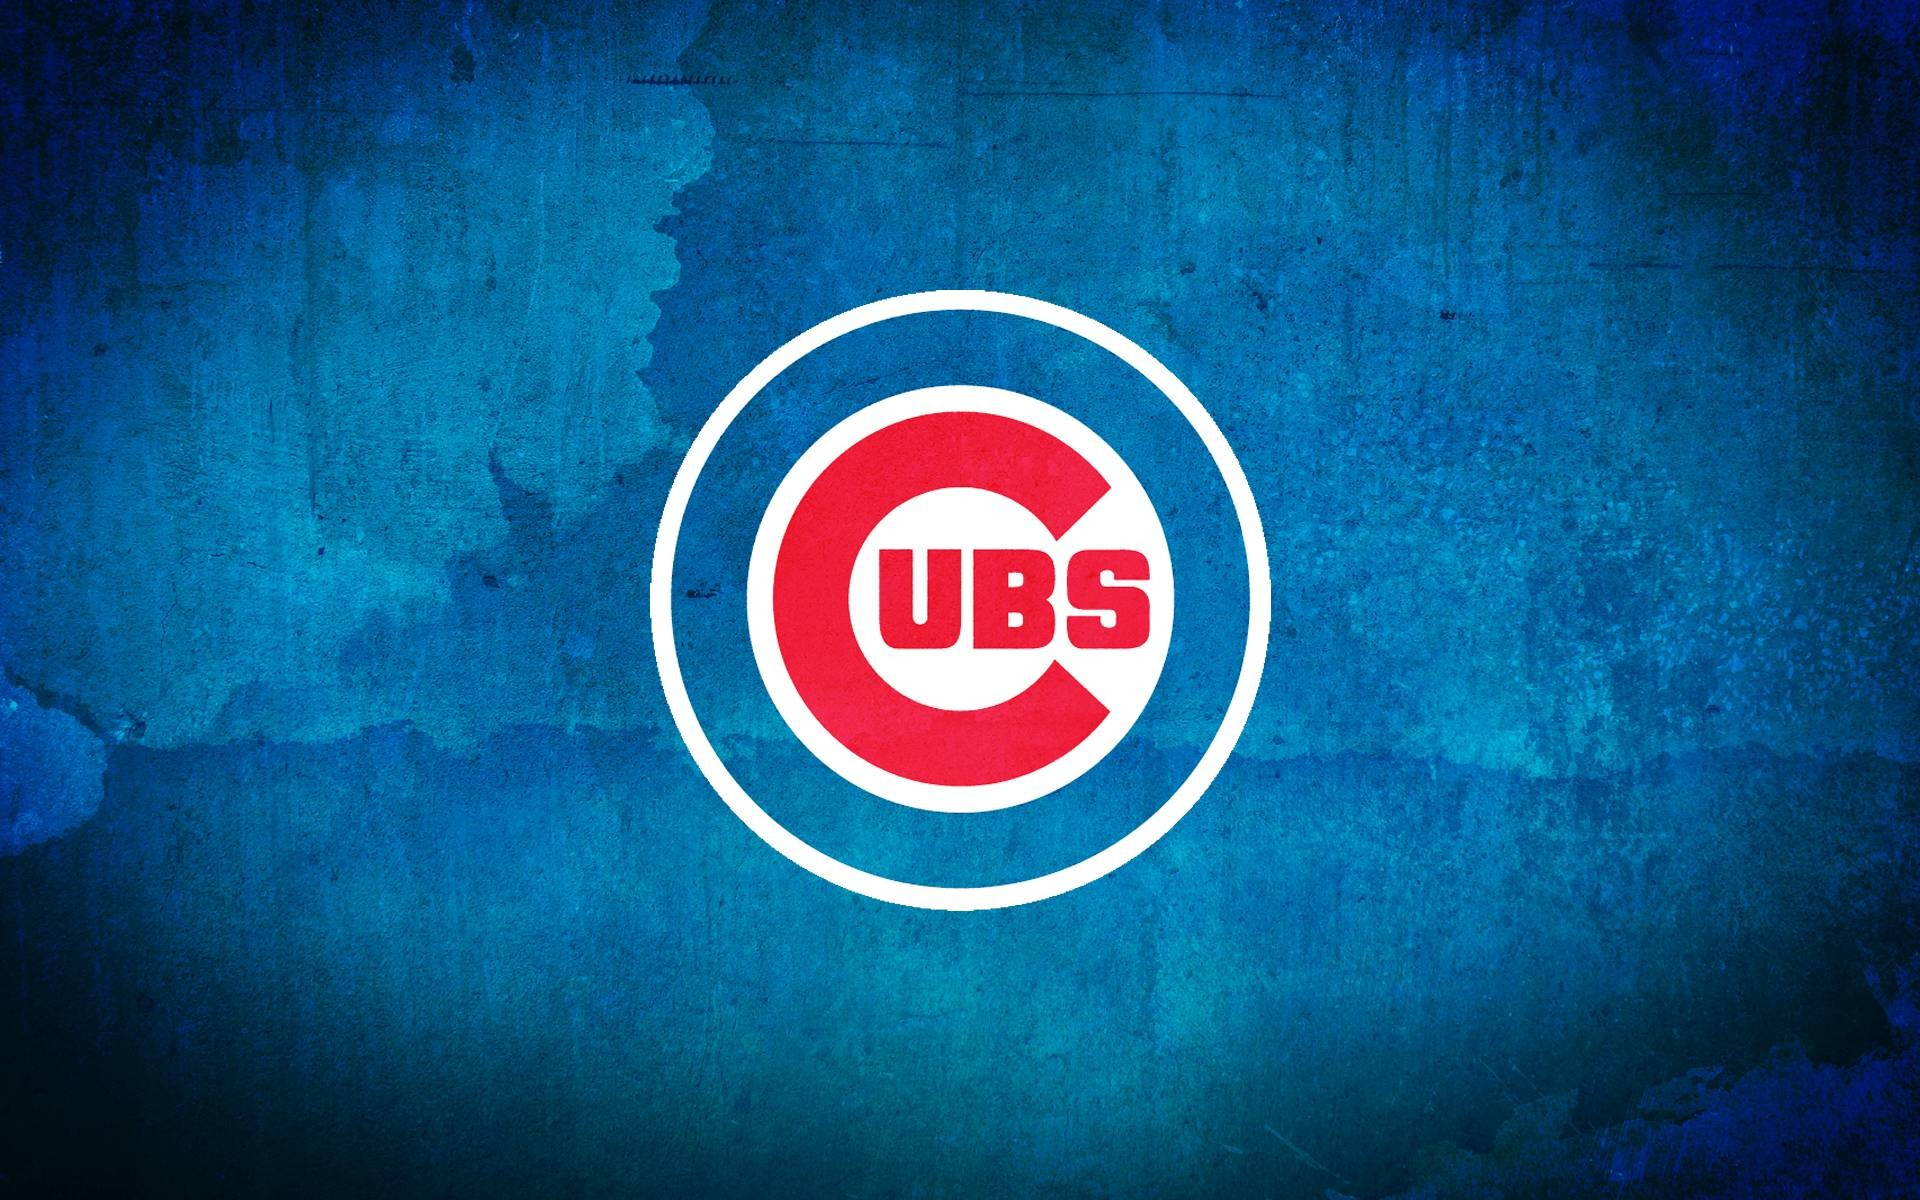 1920x1200 Chicago Cubs wallpapers | Chicago Cubs background - Page 2